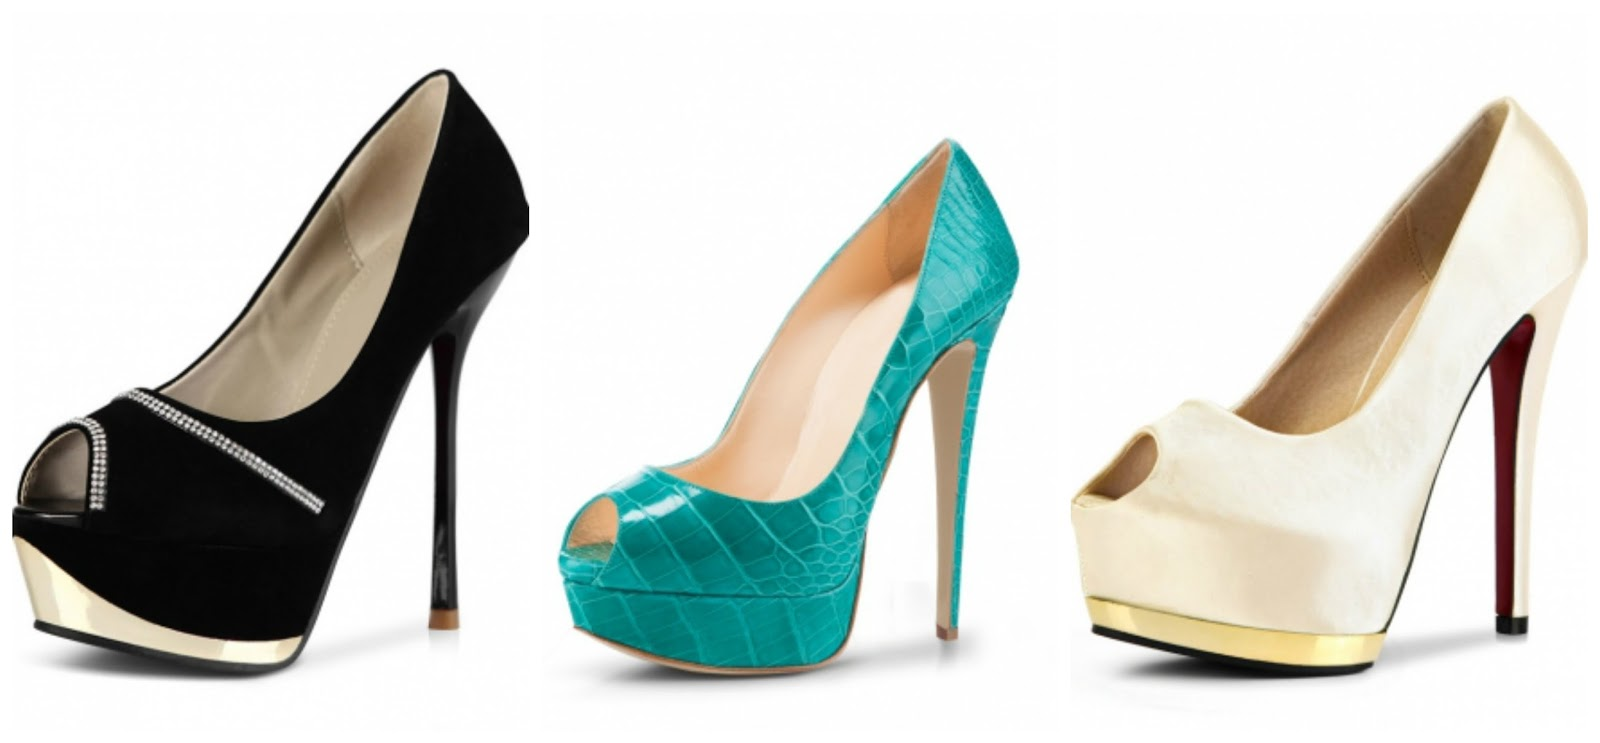 http://www.dressale.com/specials_show/peep-toe-heels-never-out-of-fashion-269.html